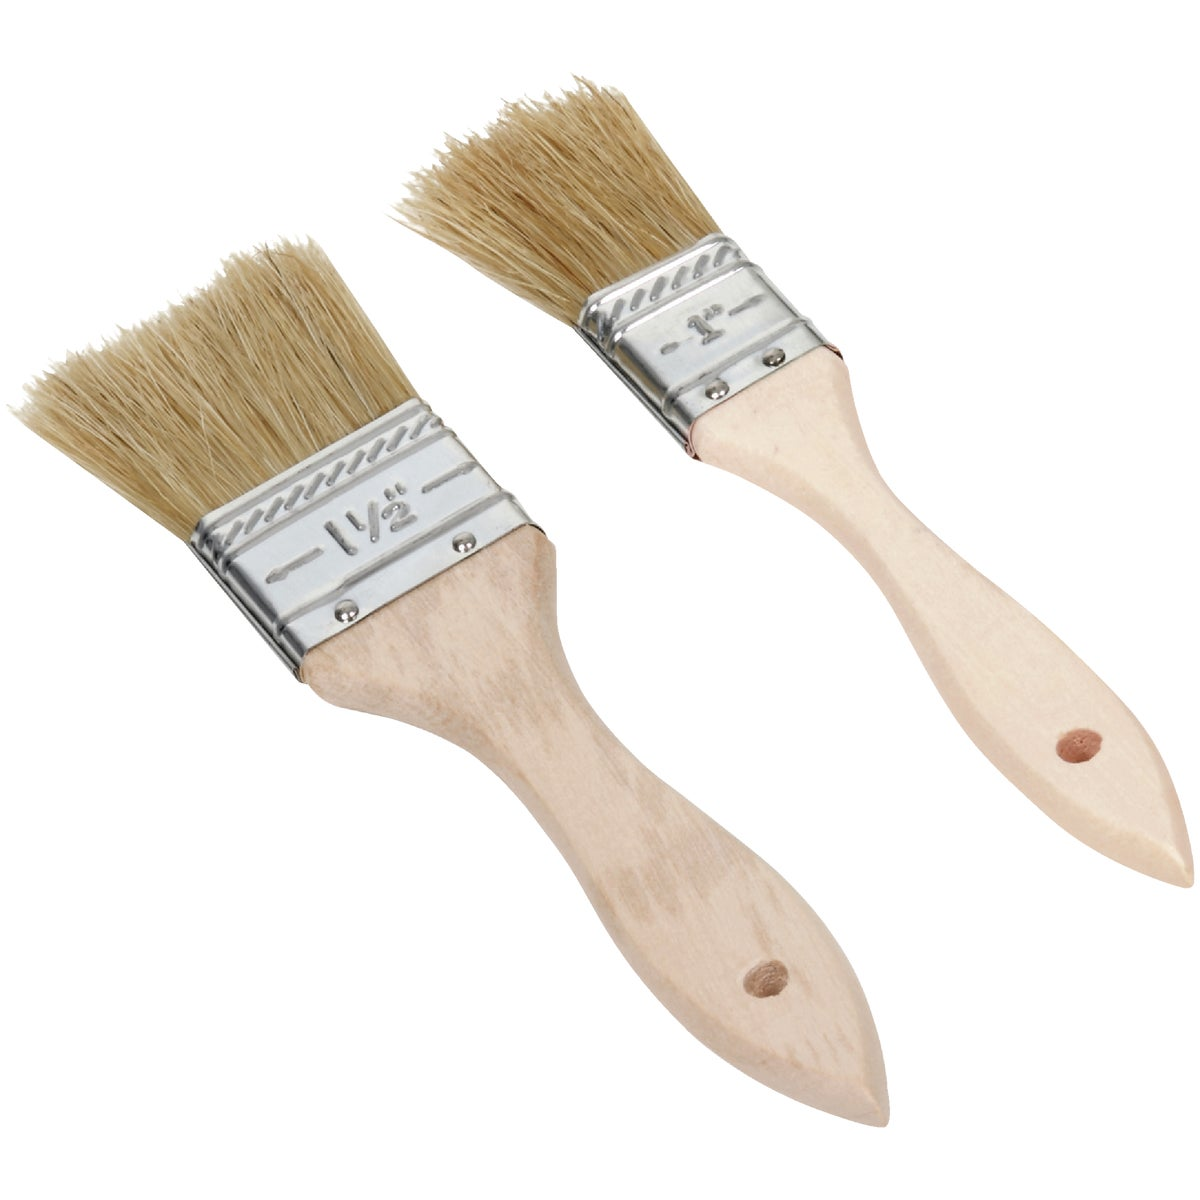 2PC BASTING BRUSH SET - 1094928 by World Kitchen  Ekco